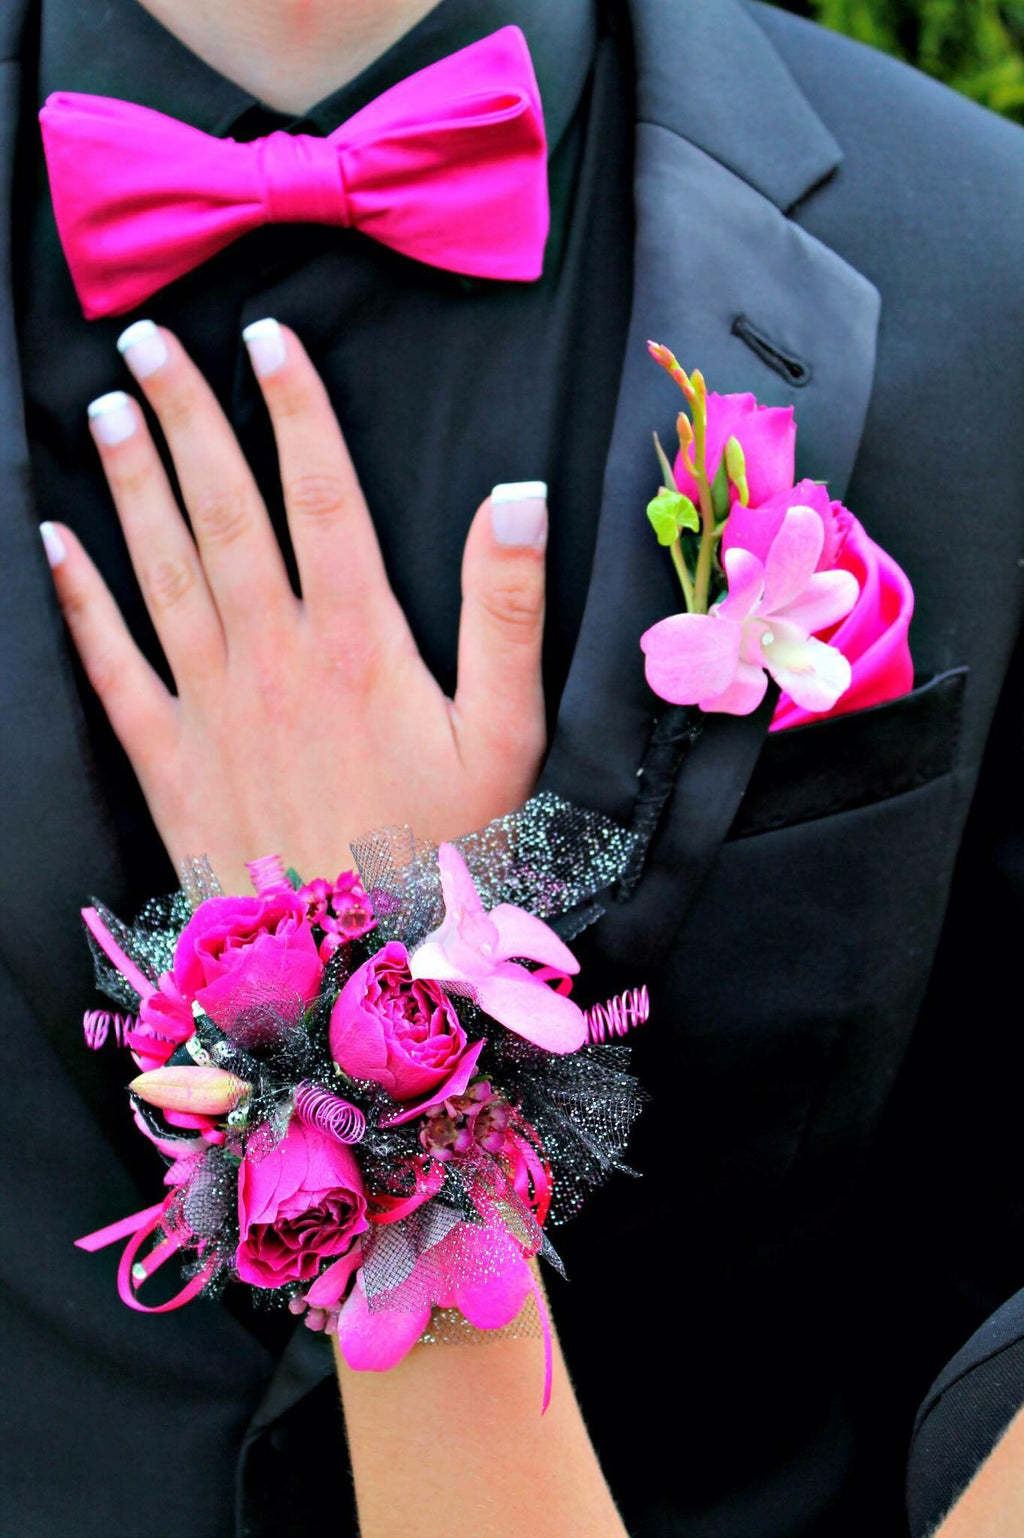 COMBO Corsage & Bout Pink orchid & Roses with black accents - Blooms In Bloom